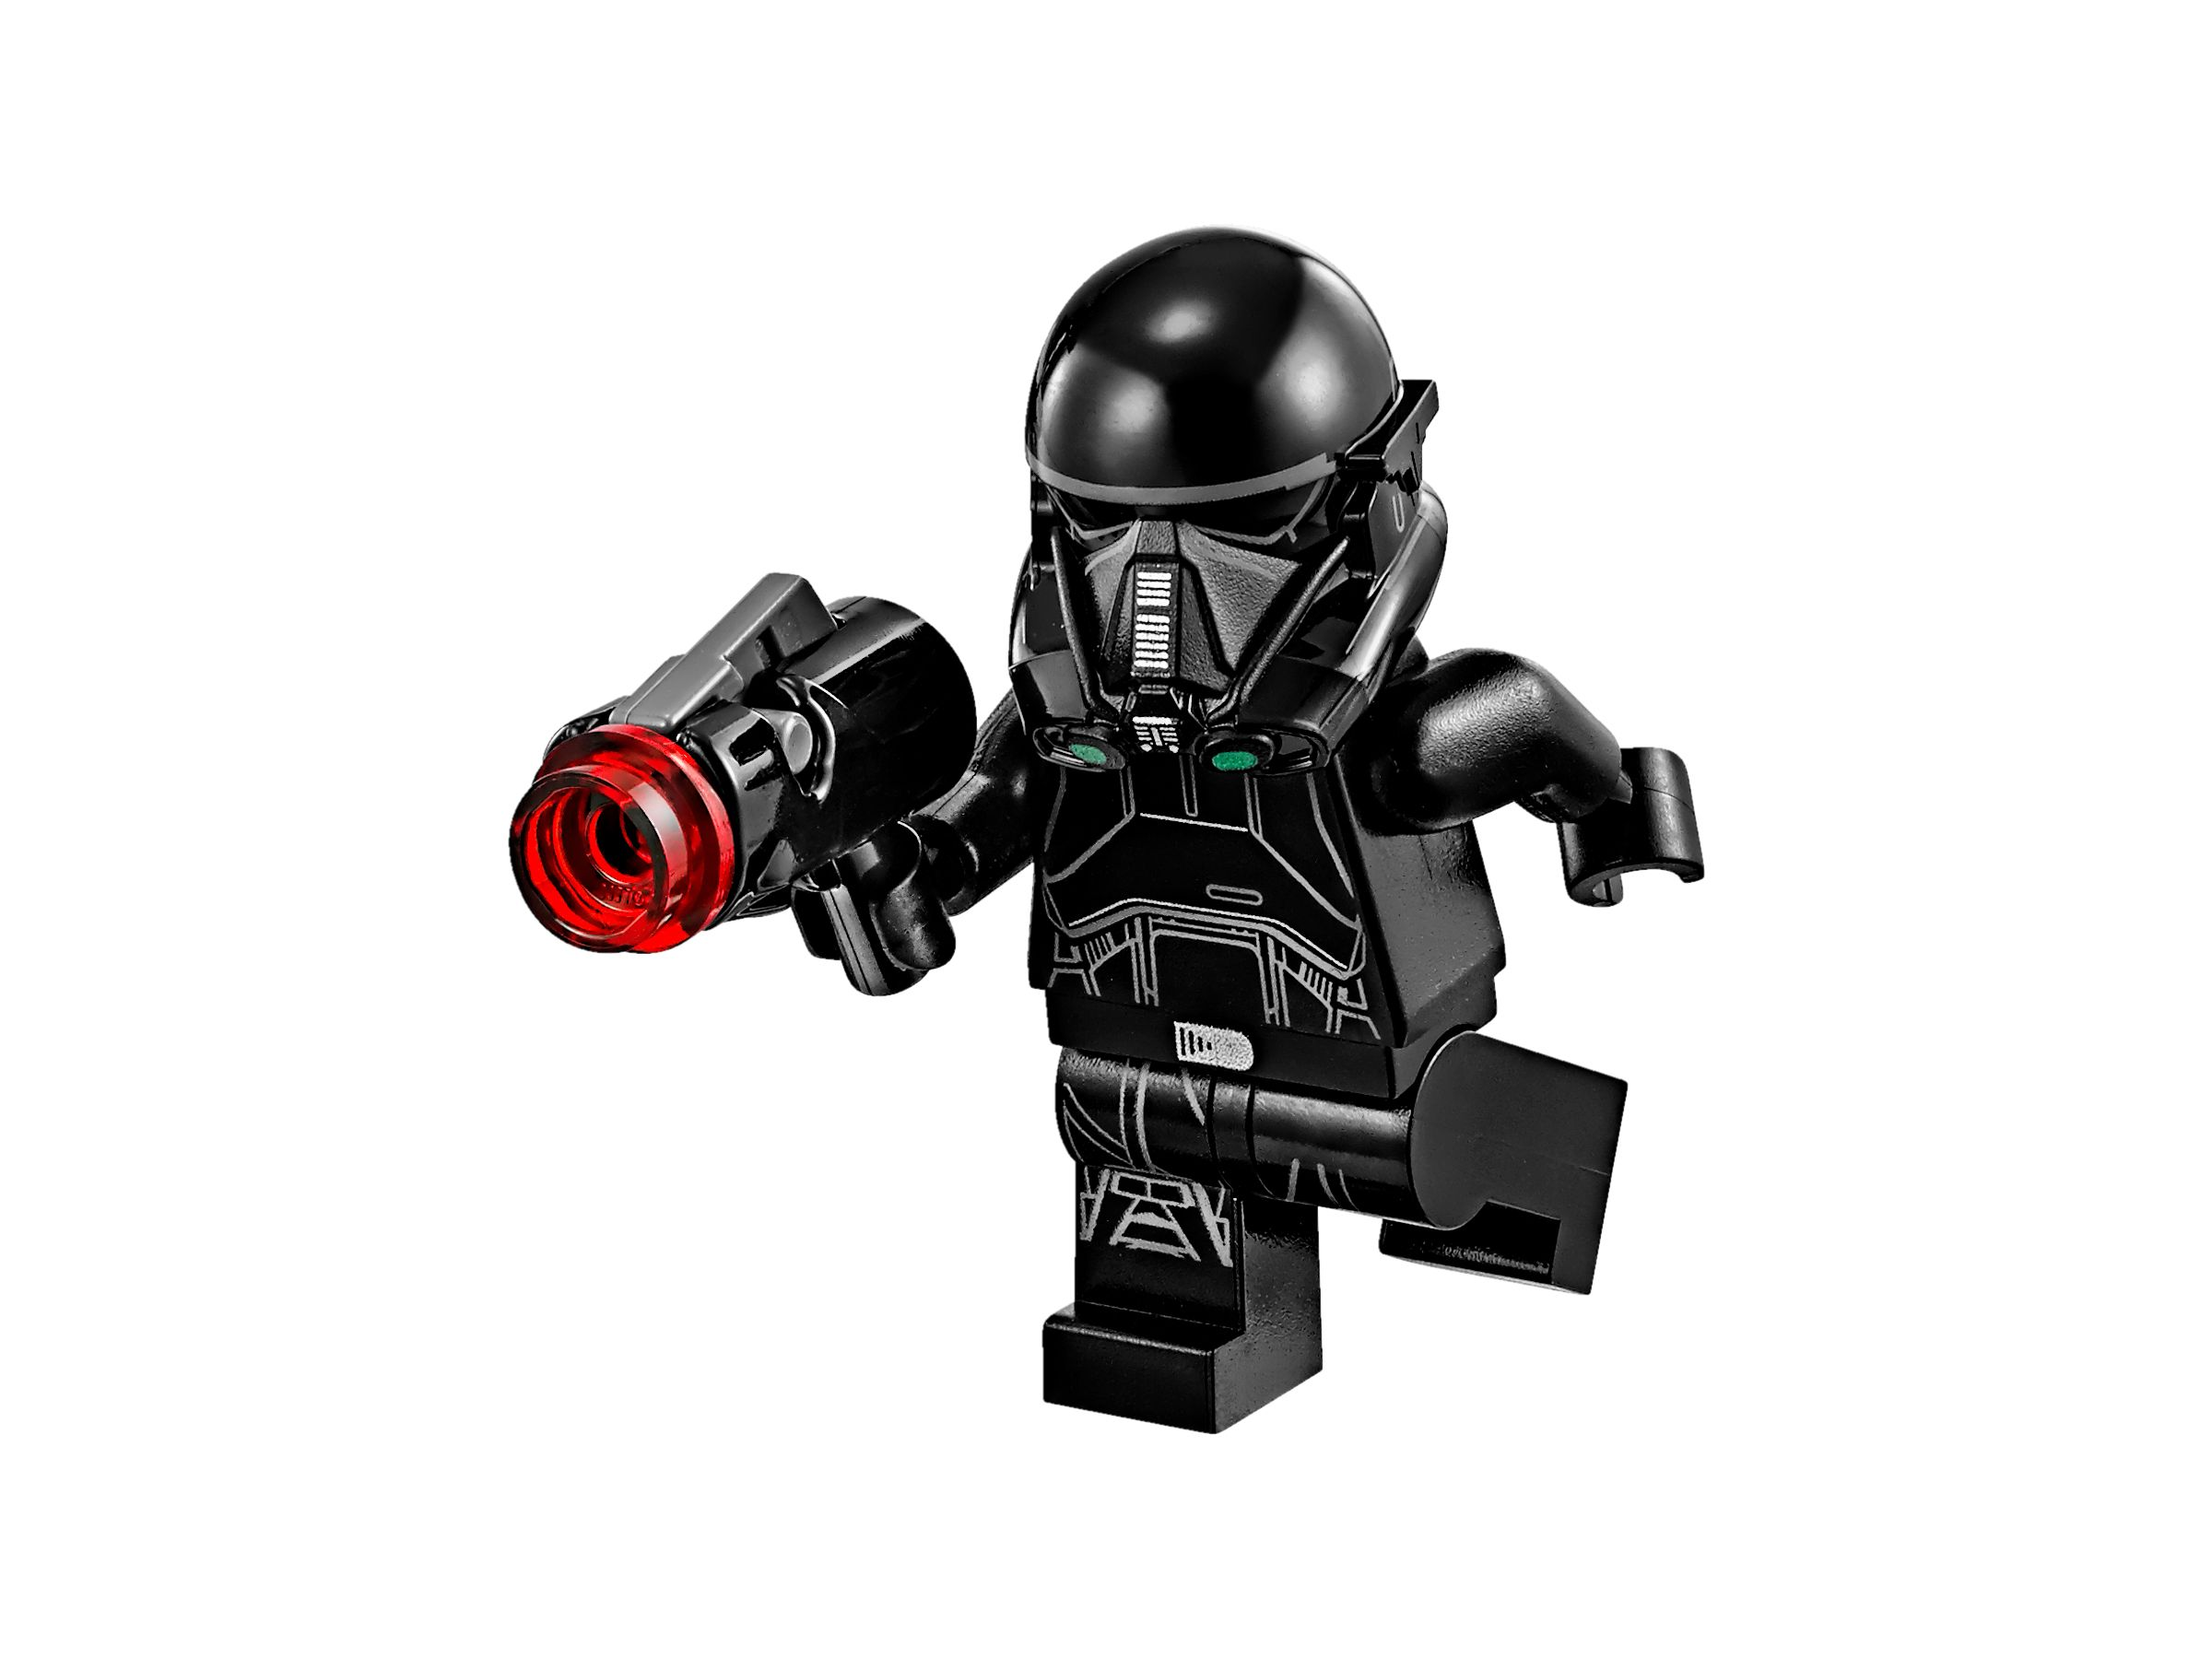 LEGO Star Wars 75165 Imperial Trooper Battle Pack LEGO_75165_alt4.jpg